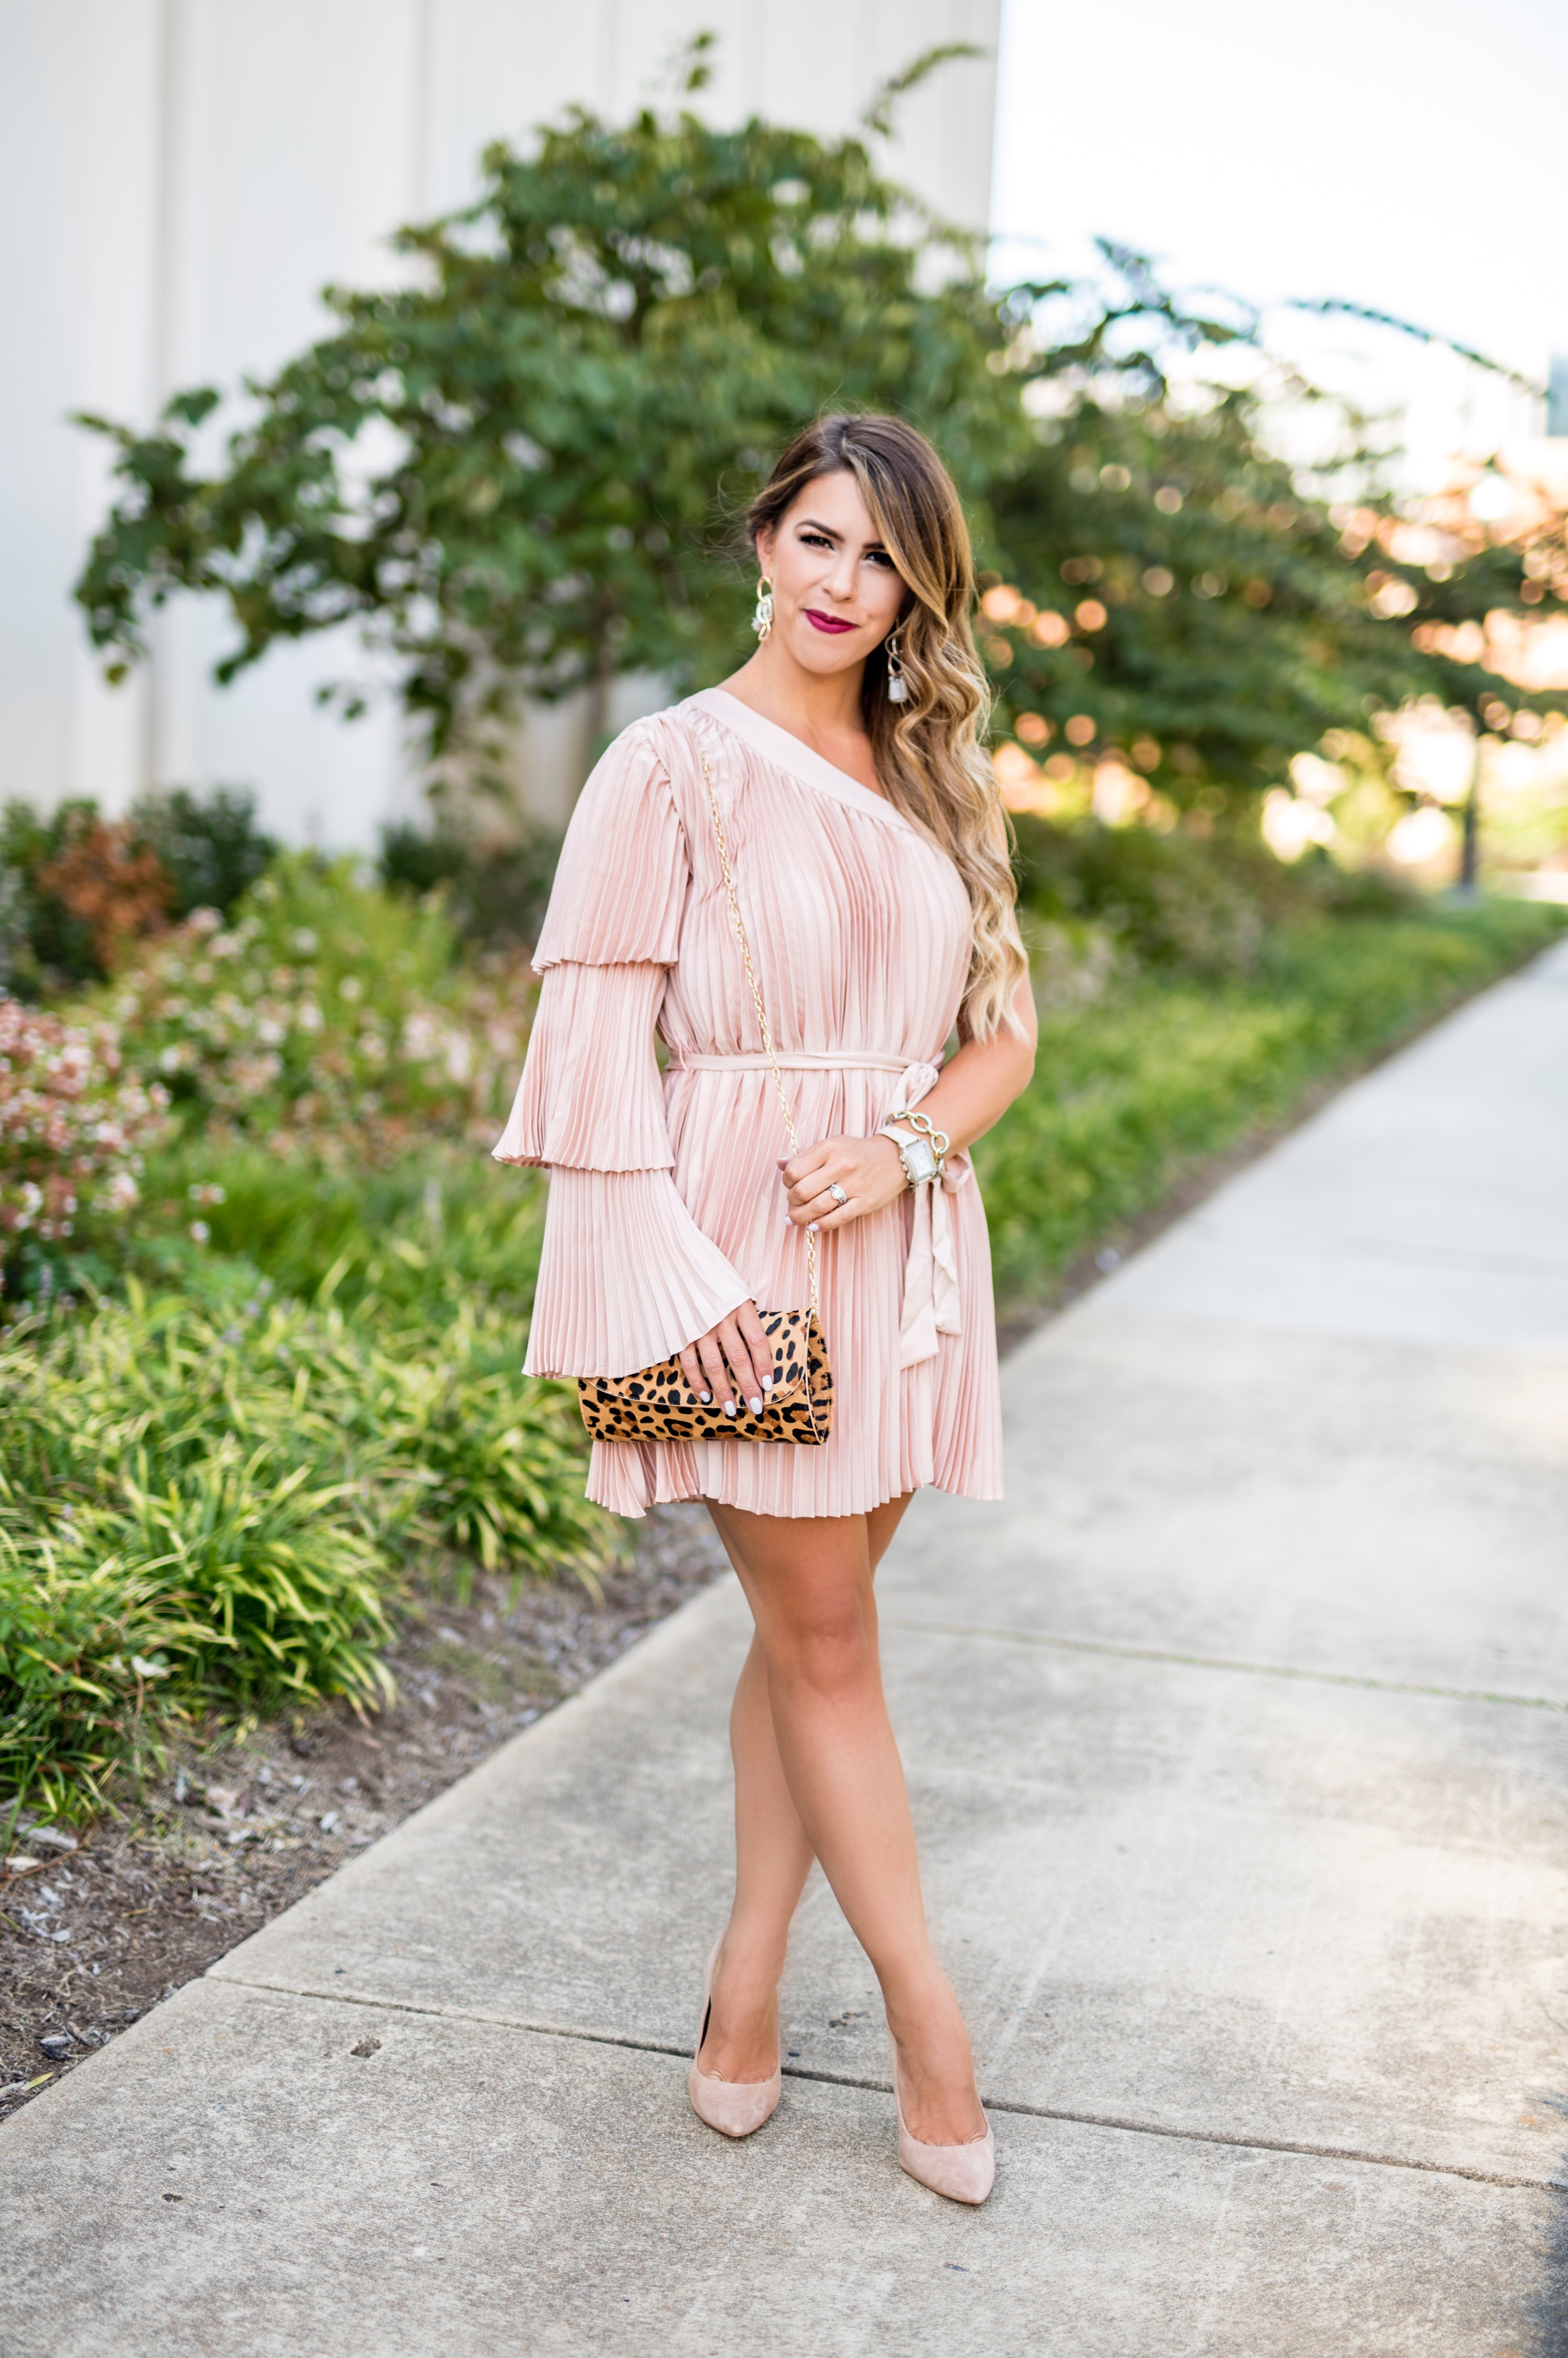 what to wear to a fall wedding wedding guest wear fall wedding guest dresses fall wedding dresses fall wedding guest dresses 2017 dresses for a fall wedding guest fall guest attire pink pleated dress keepsake dress blush dress pleated dress